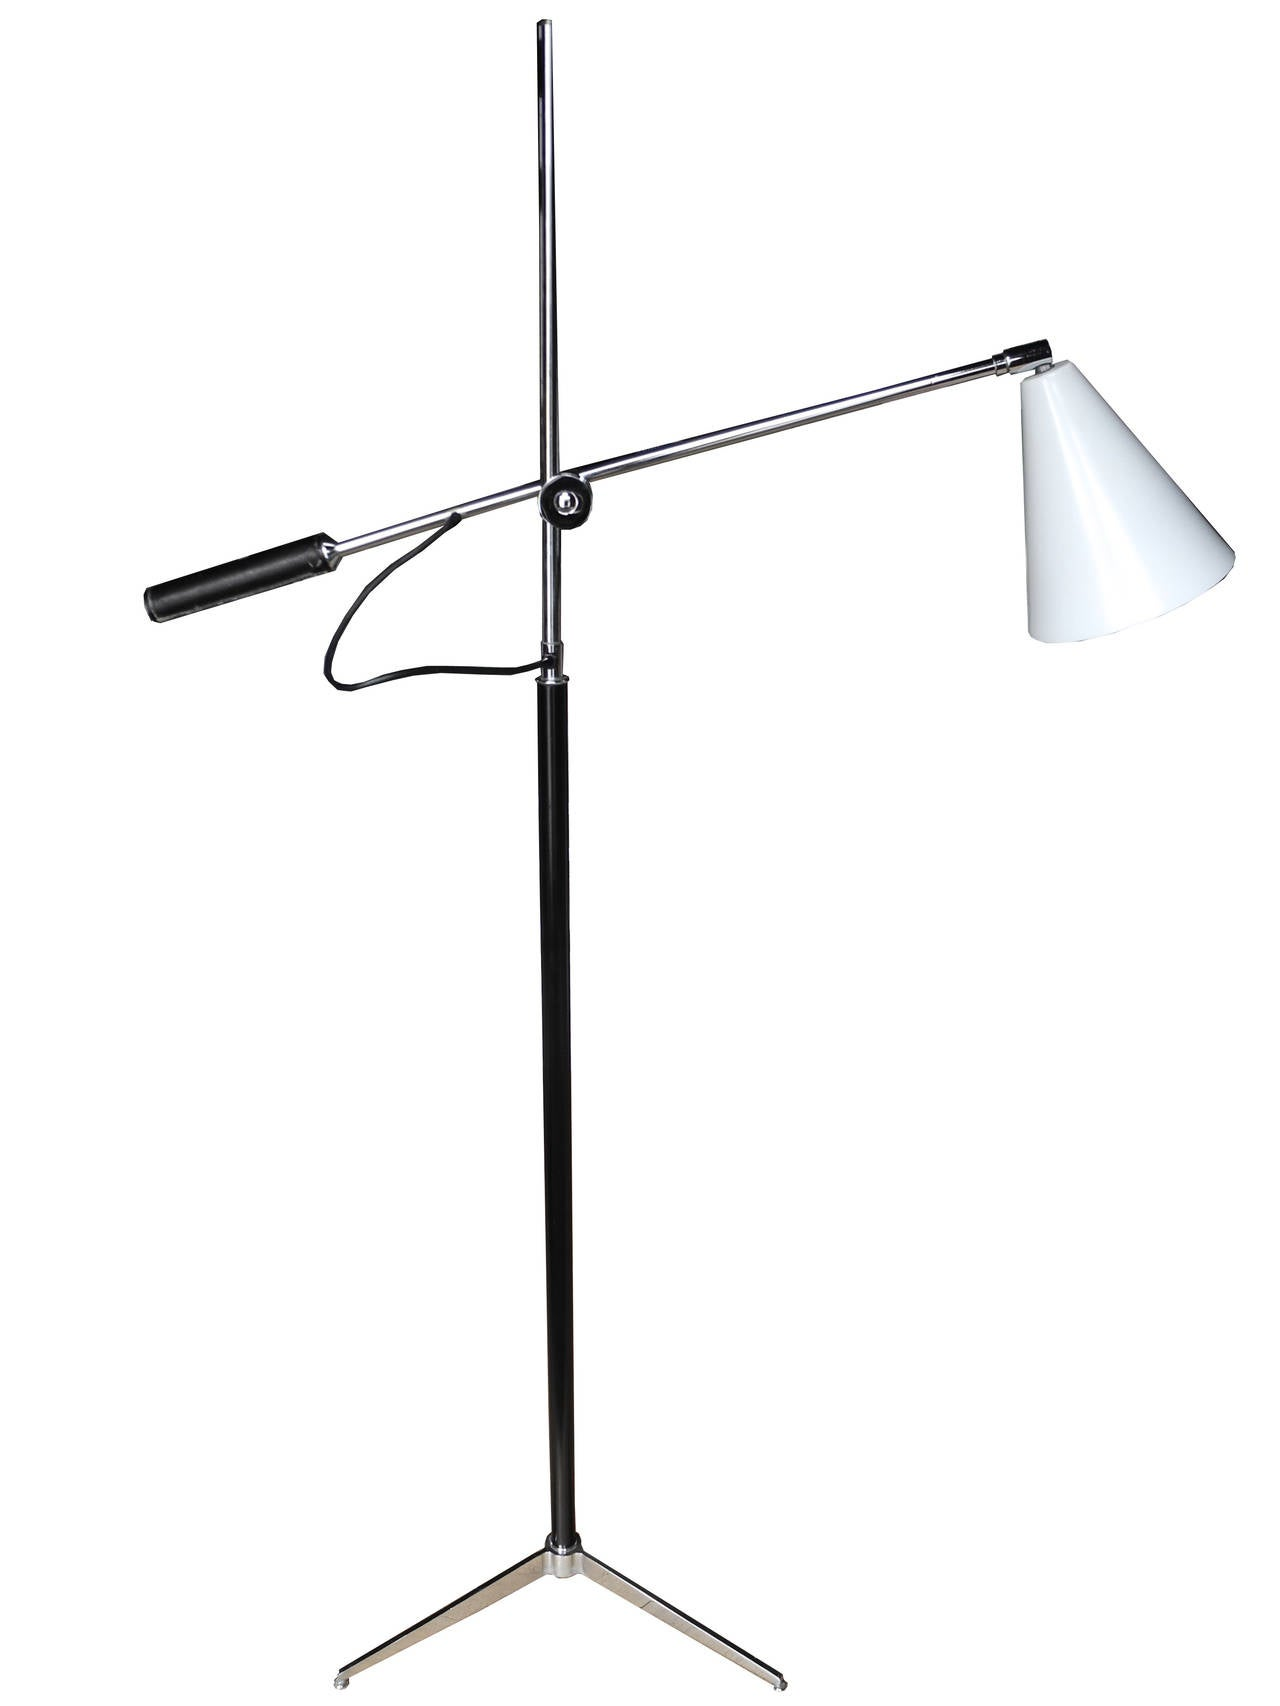 This is a tripod chrome base metal lamp designed in the style of Gino Sarfatti, to move up and down. The handle on the arm has a leather sleeve and the cone shade is made of spun aluminum painted white. The height of the center rod is 58